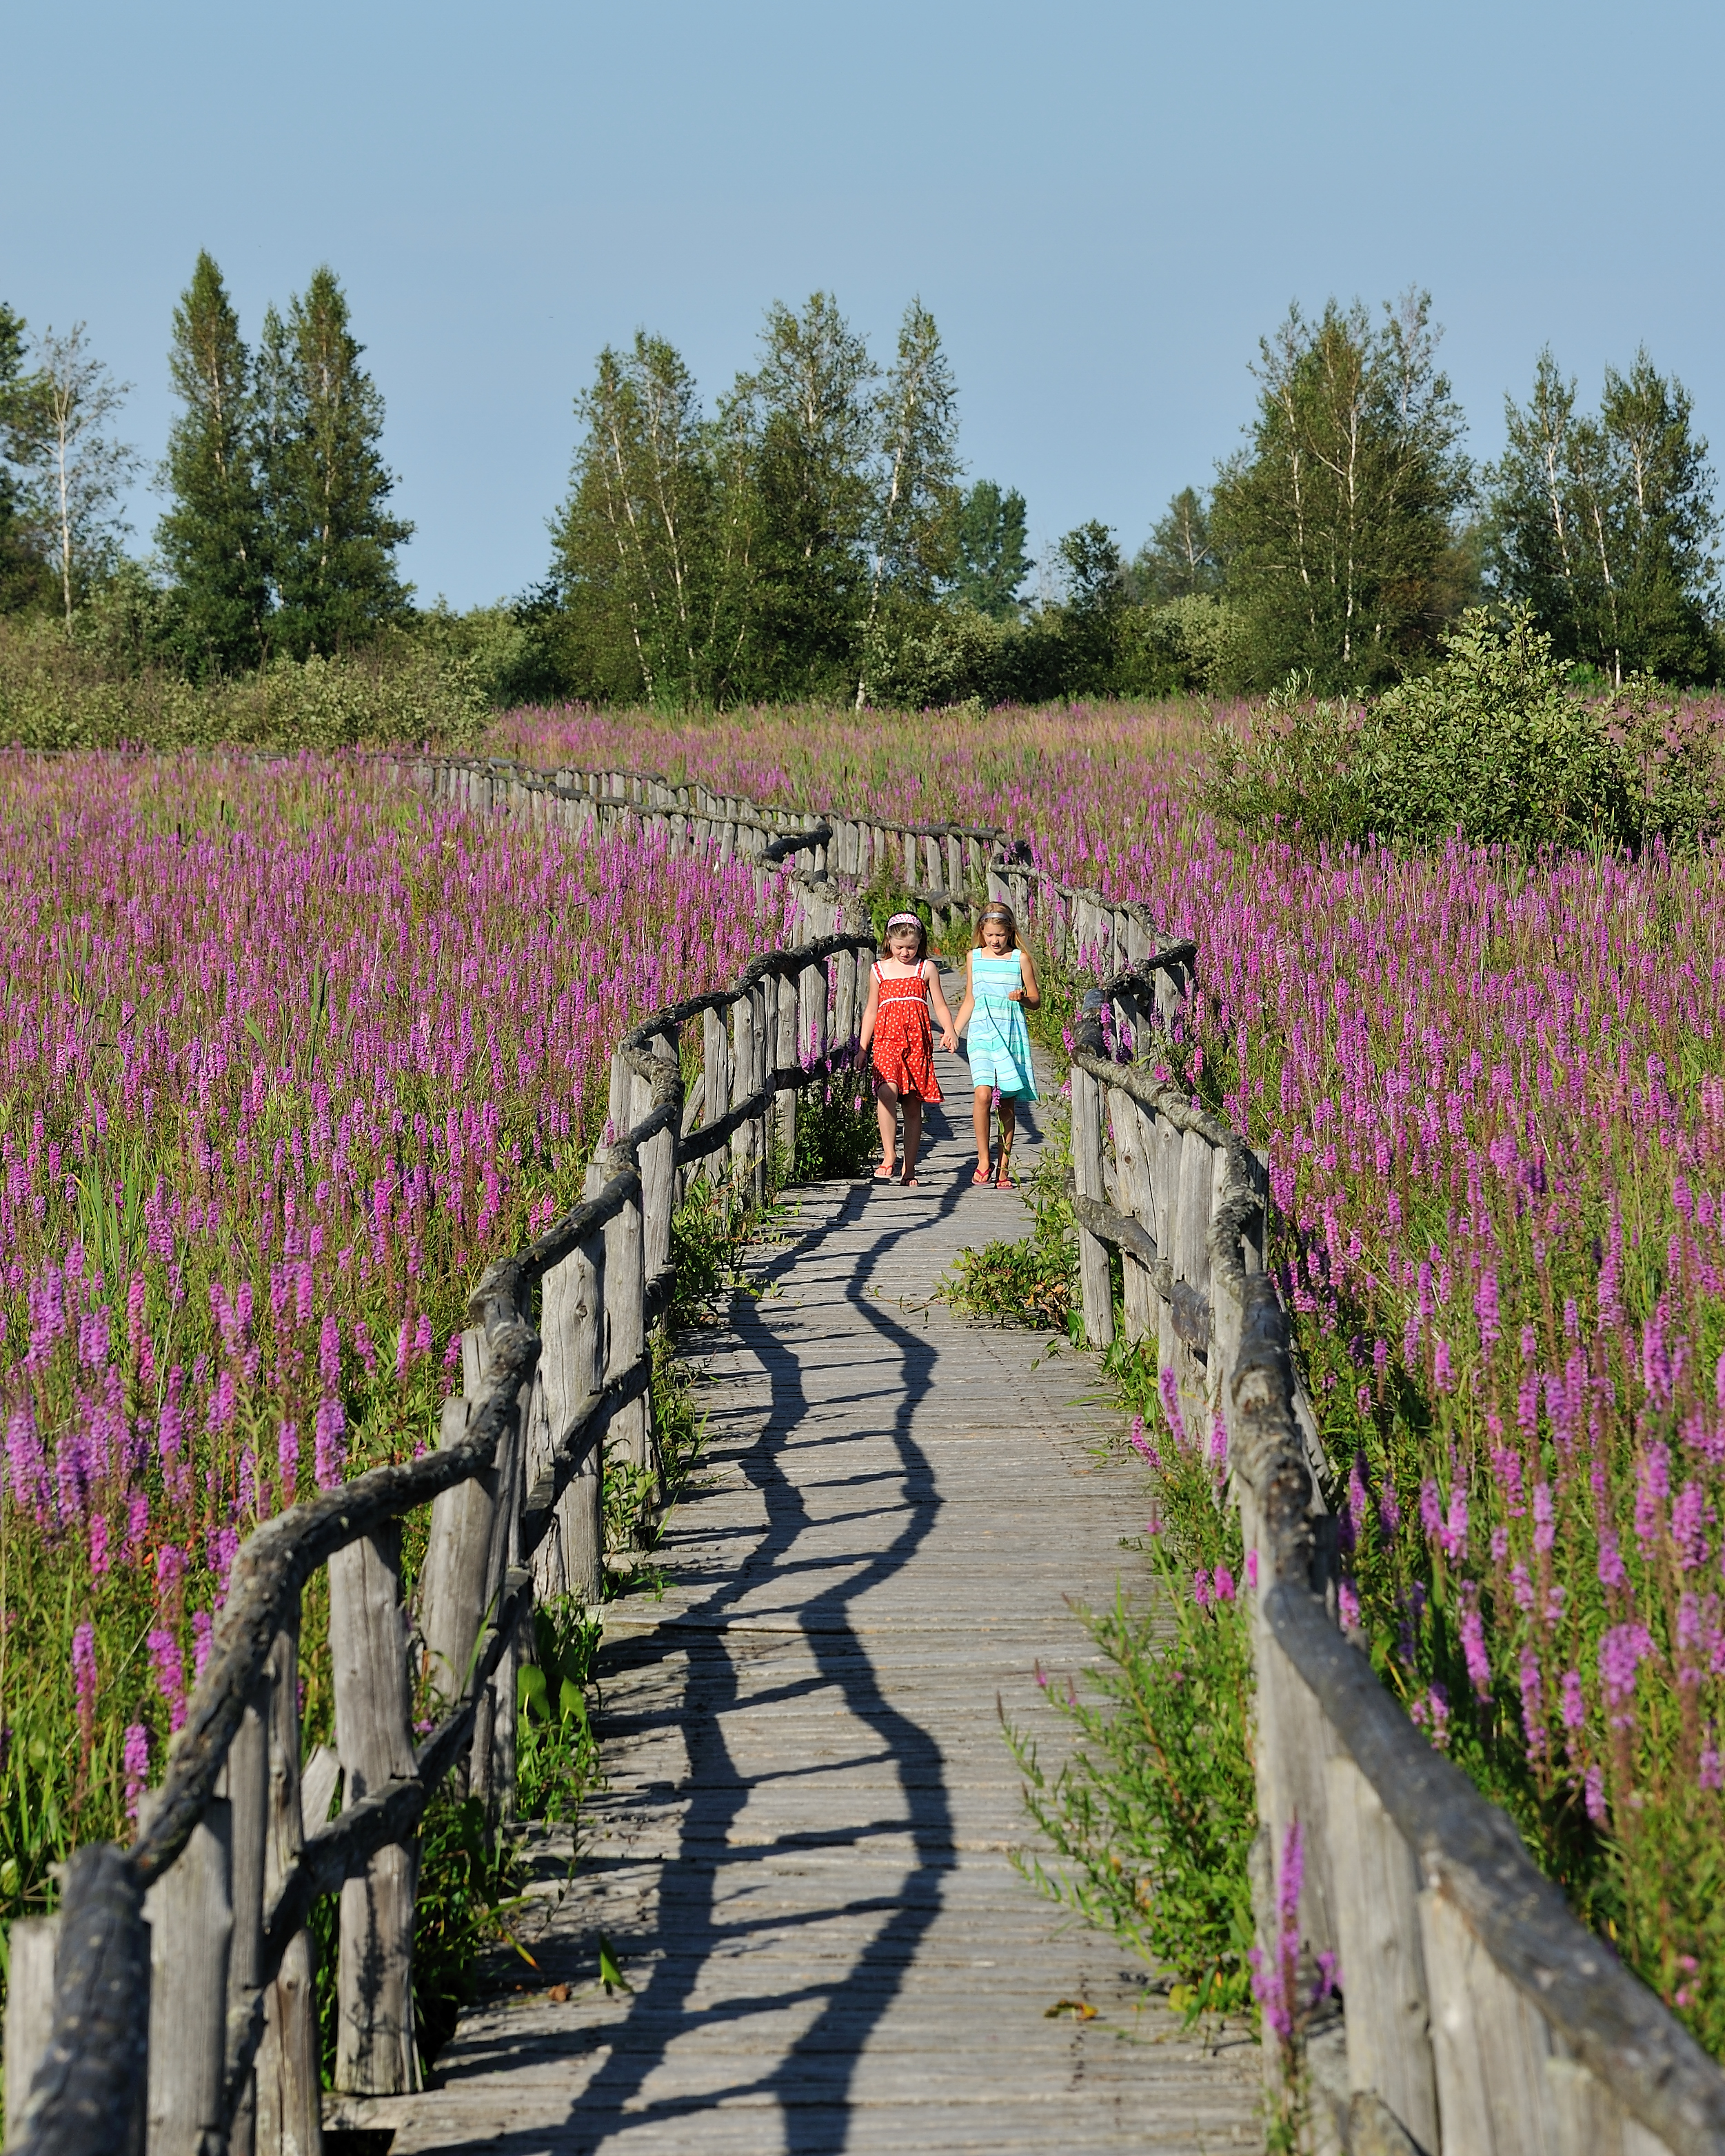 a scene analysis of purple loosestrife